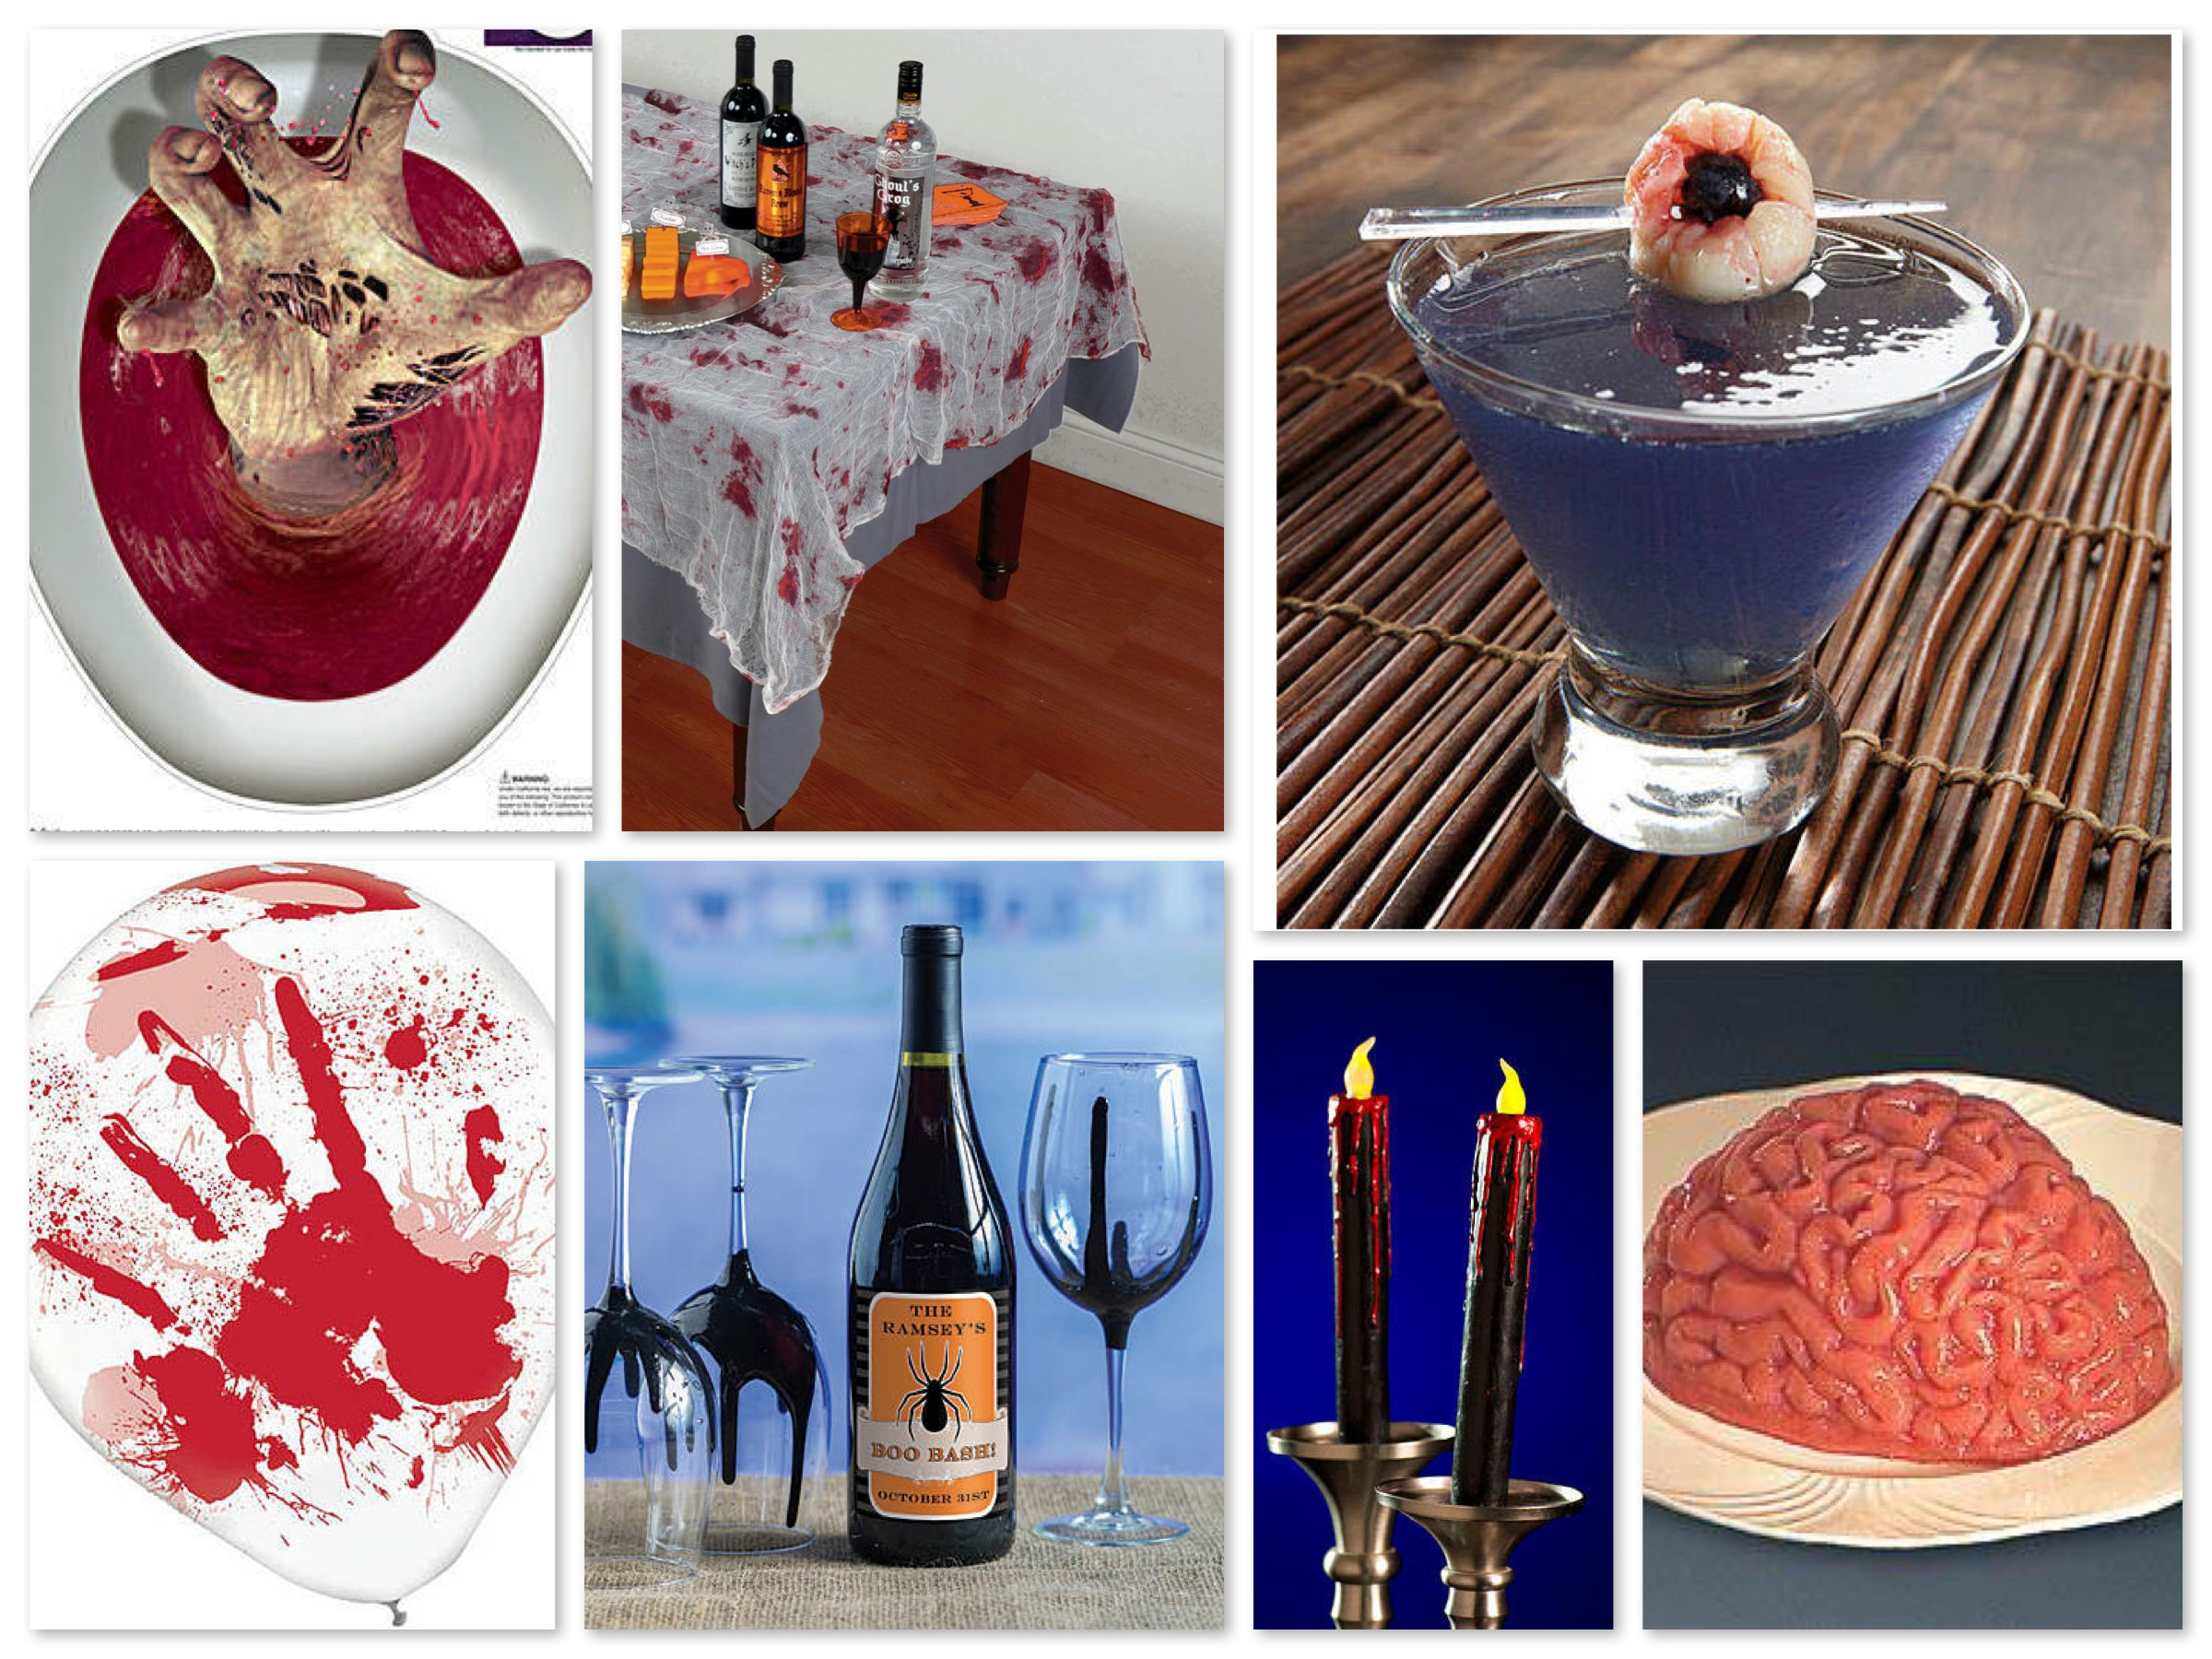 Festive Zombie Home Decor & Dinner Decoration Ideas